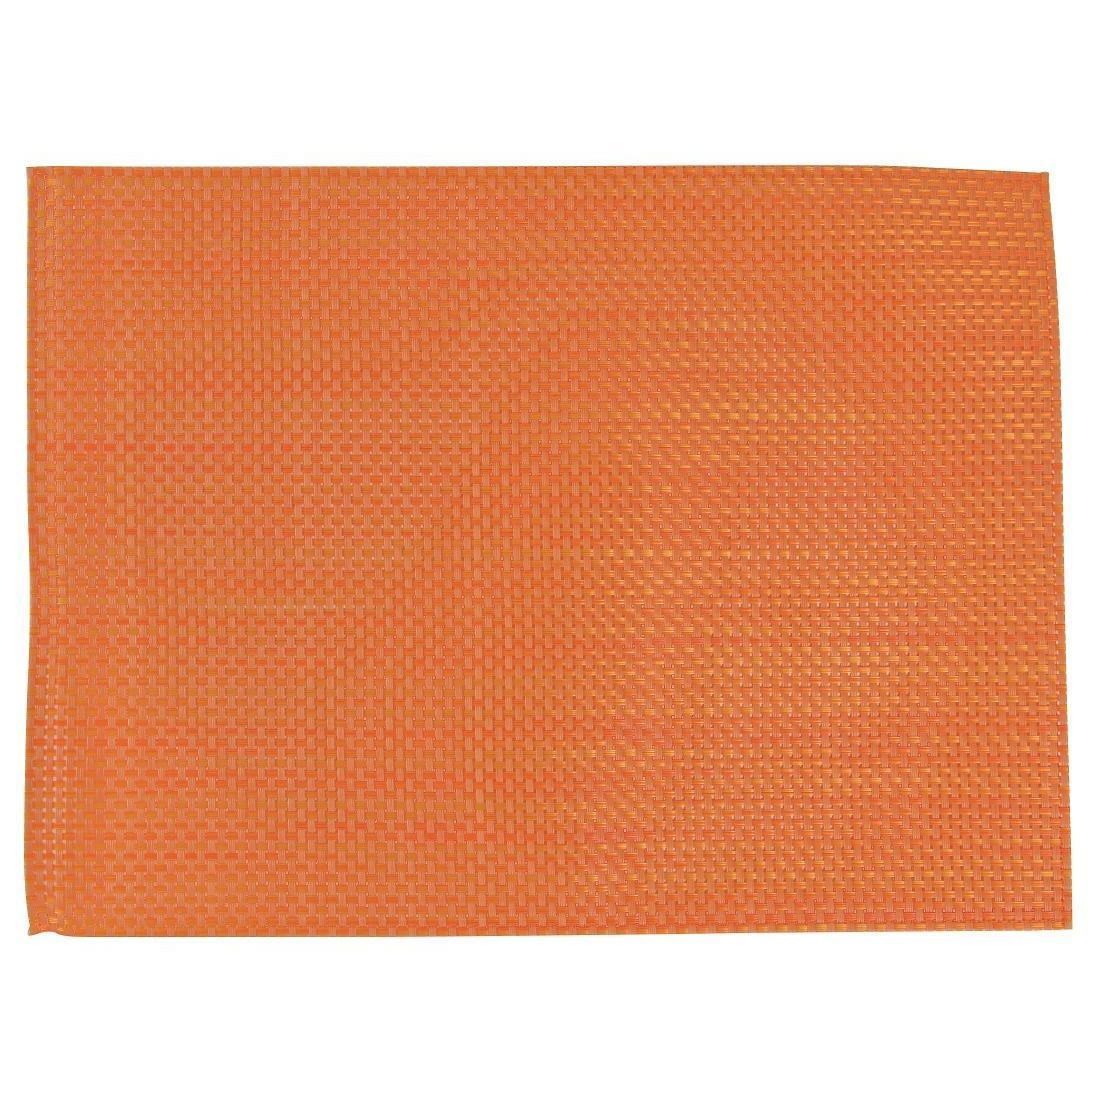 APS PVC Placemat Orange - Case 6 - GJ993